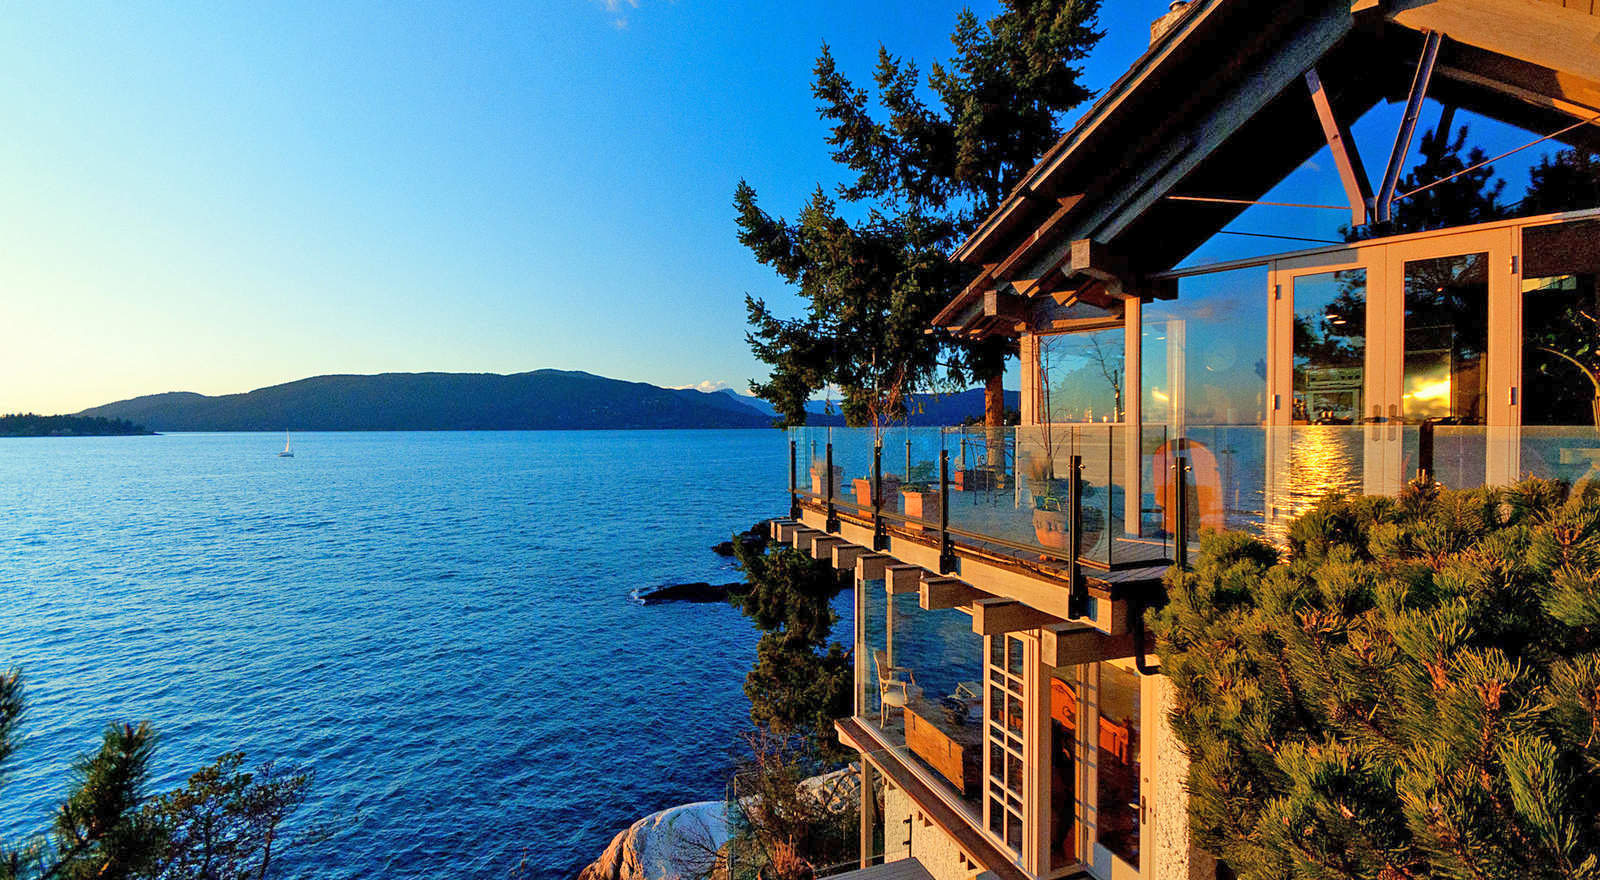 Spectacular lakefront dwelling in vancouver by paul merrick for Lake front houses